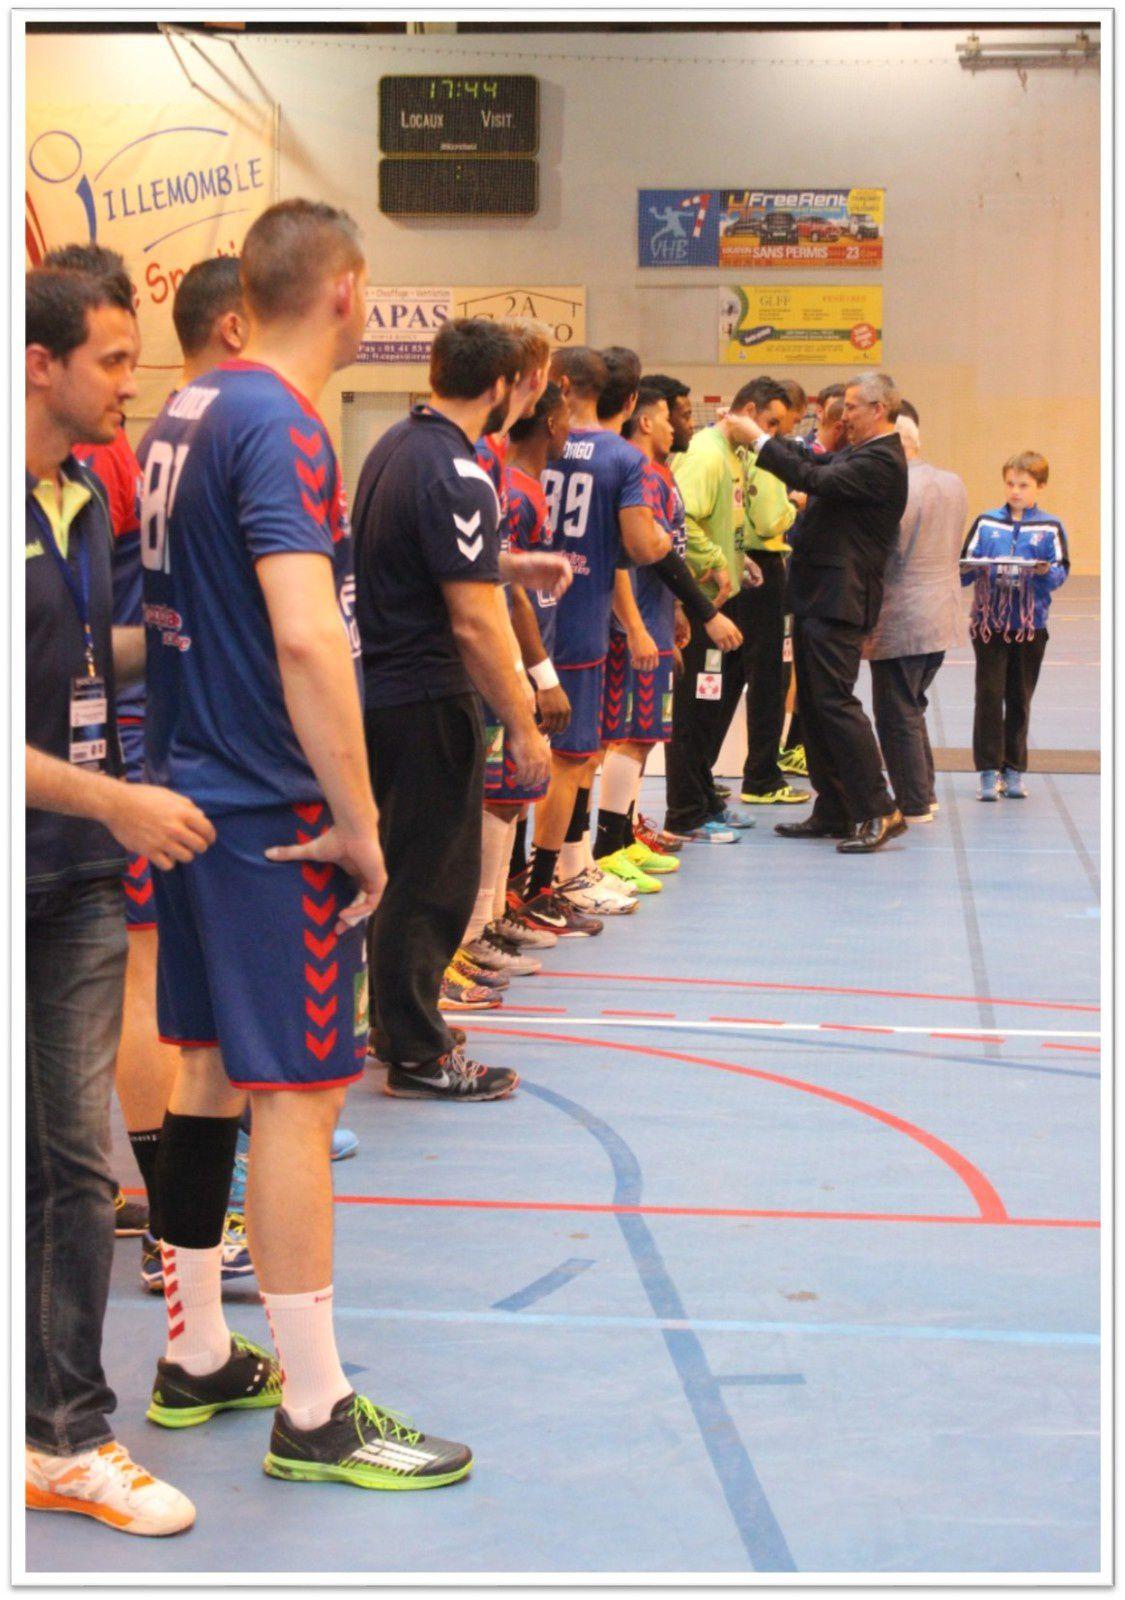 Barrages ProD2/N1 2015 (Villemomble 31.05.2015) #3